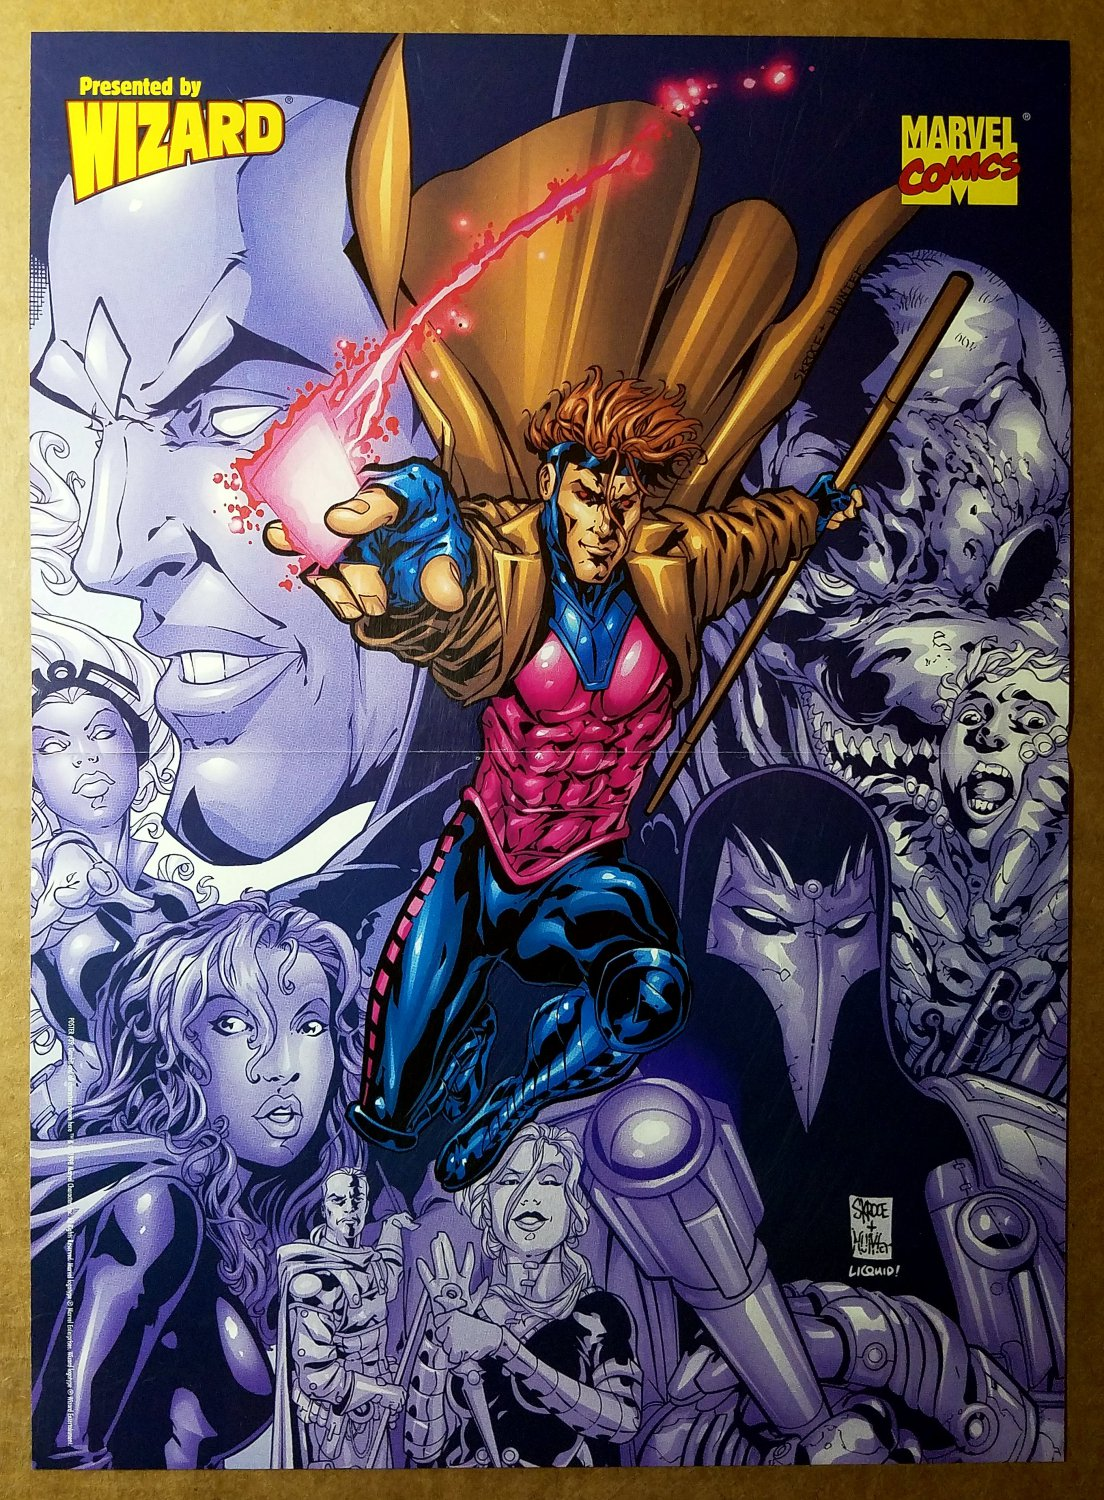 X-Men Gambit Storm Mr Sinister Marvel Comics Poster by Steve Skroce